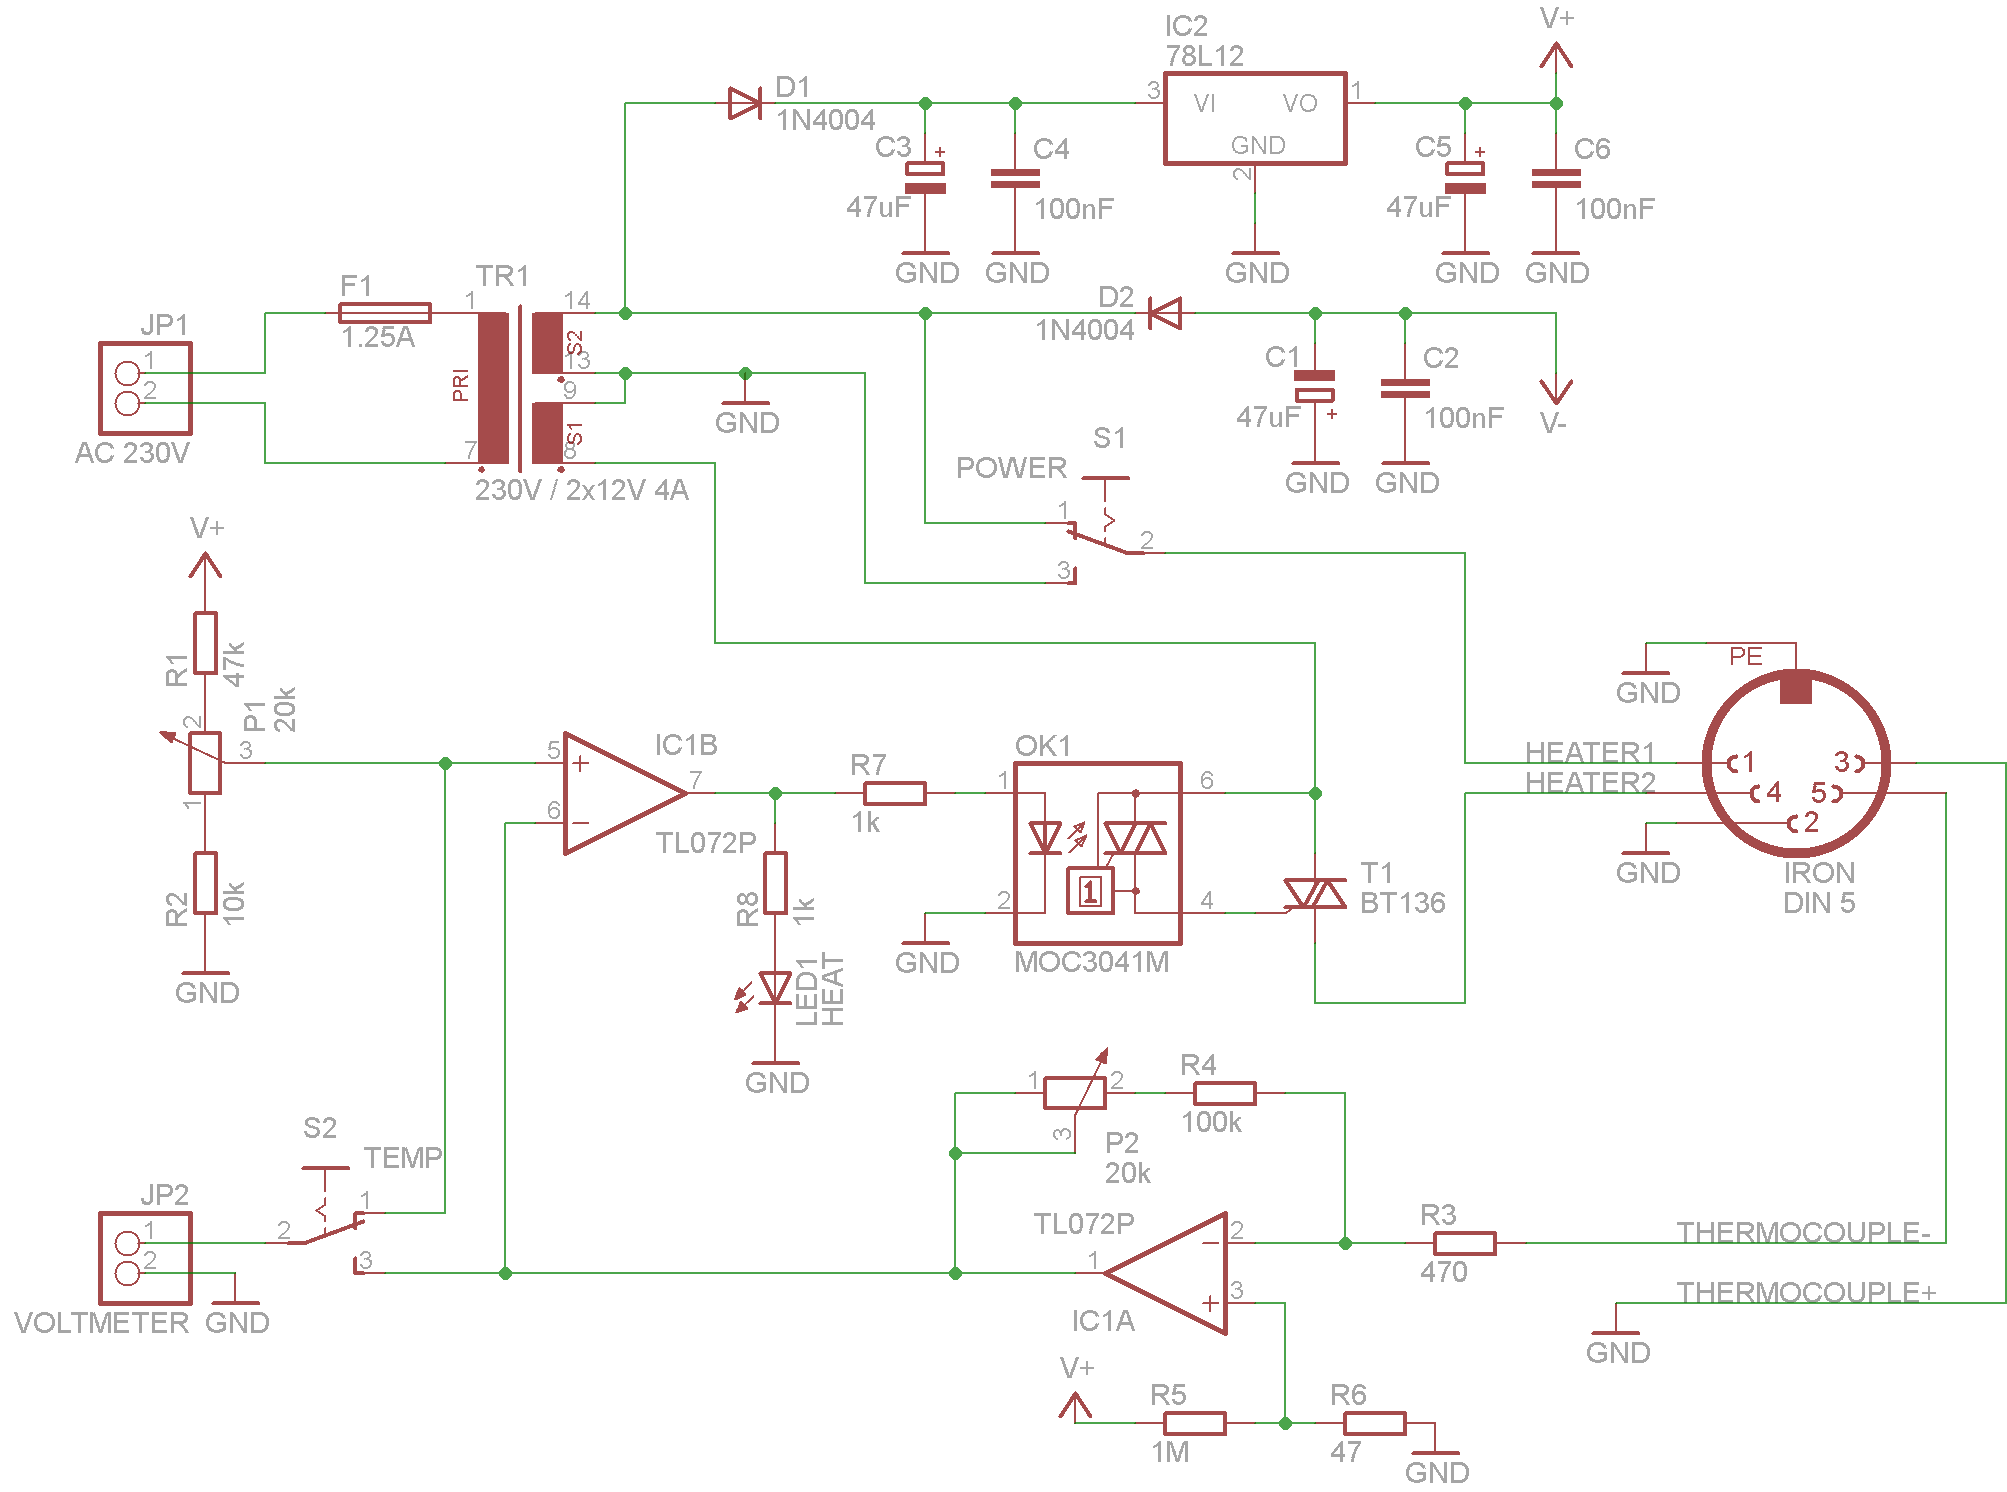 My Soldering Station Low Level Fun Drill Wiring Diagram Schematic